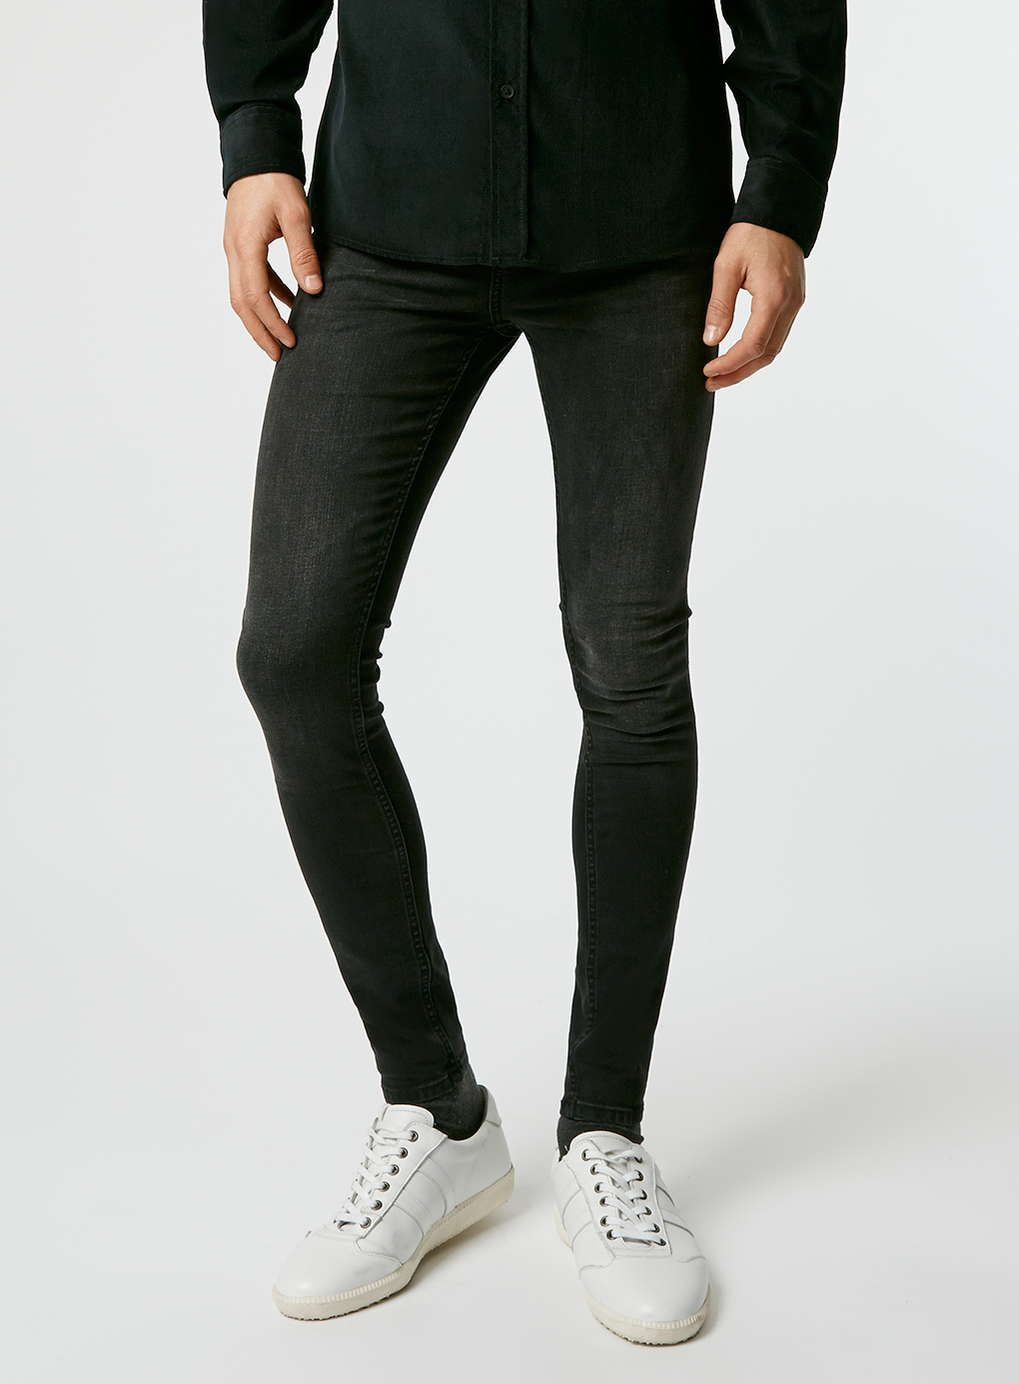 d46b01045d003 Jeans for Abe. Black jeans in order to replace the vibrant blues of ...